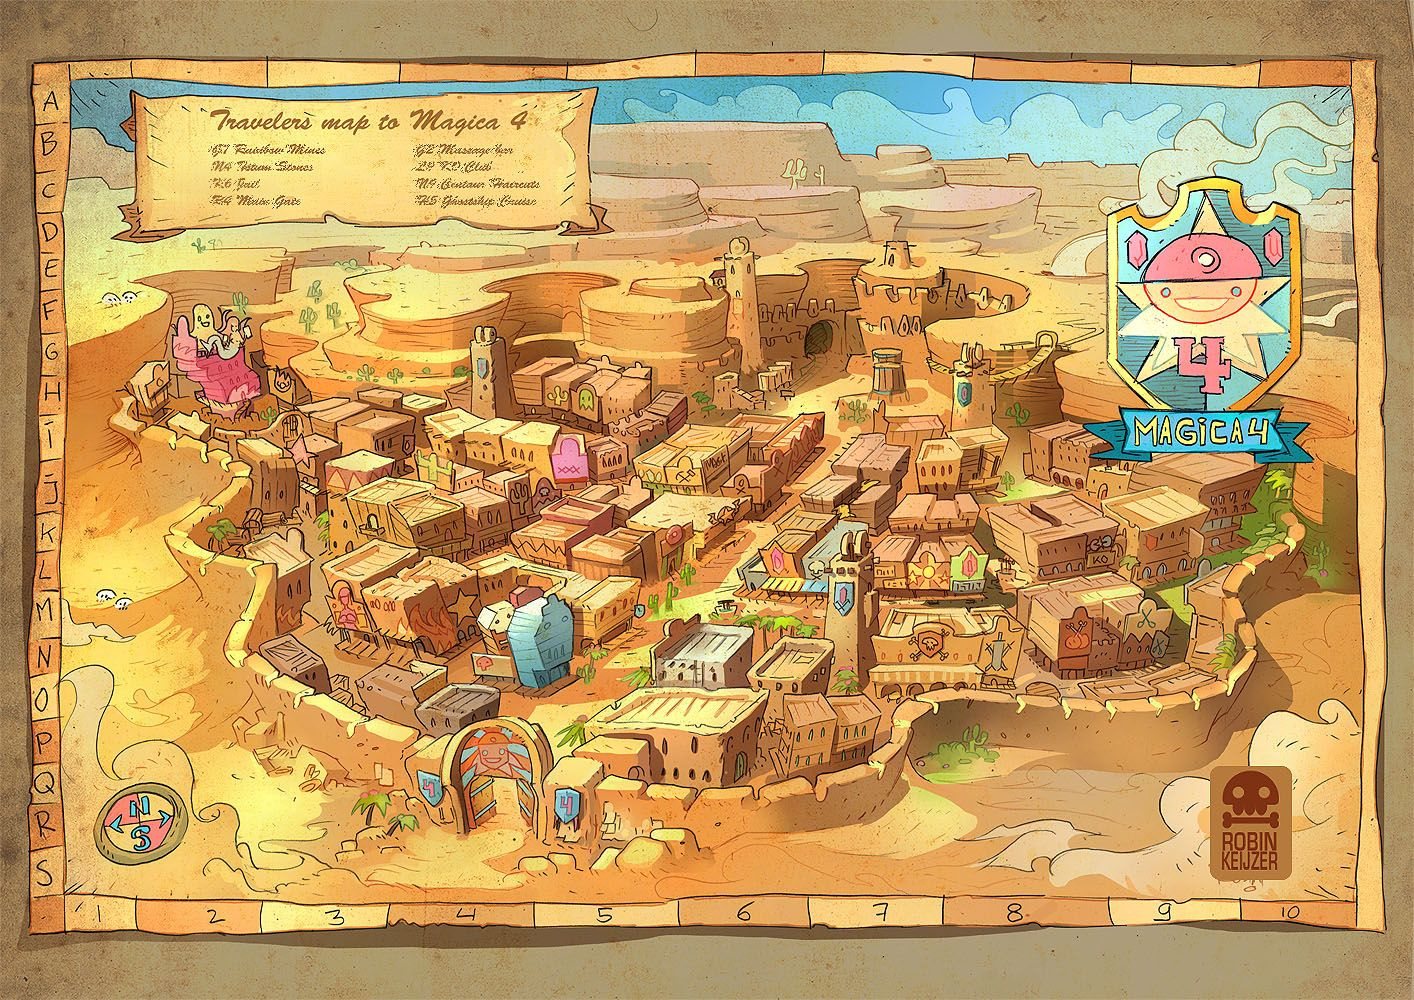 A fantasy map of a desert town made for wizard brew dd a fantasy map of a desert town made for wizard brew gumiabroncs Choice Image